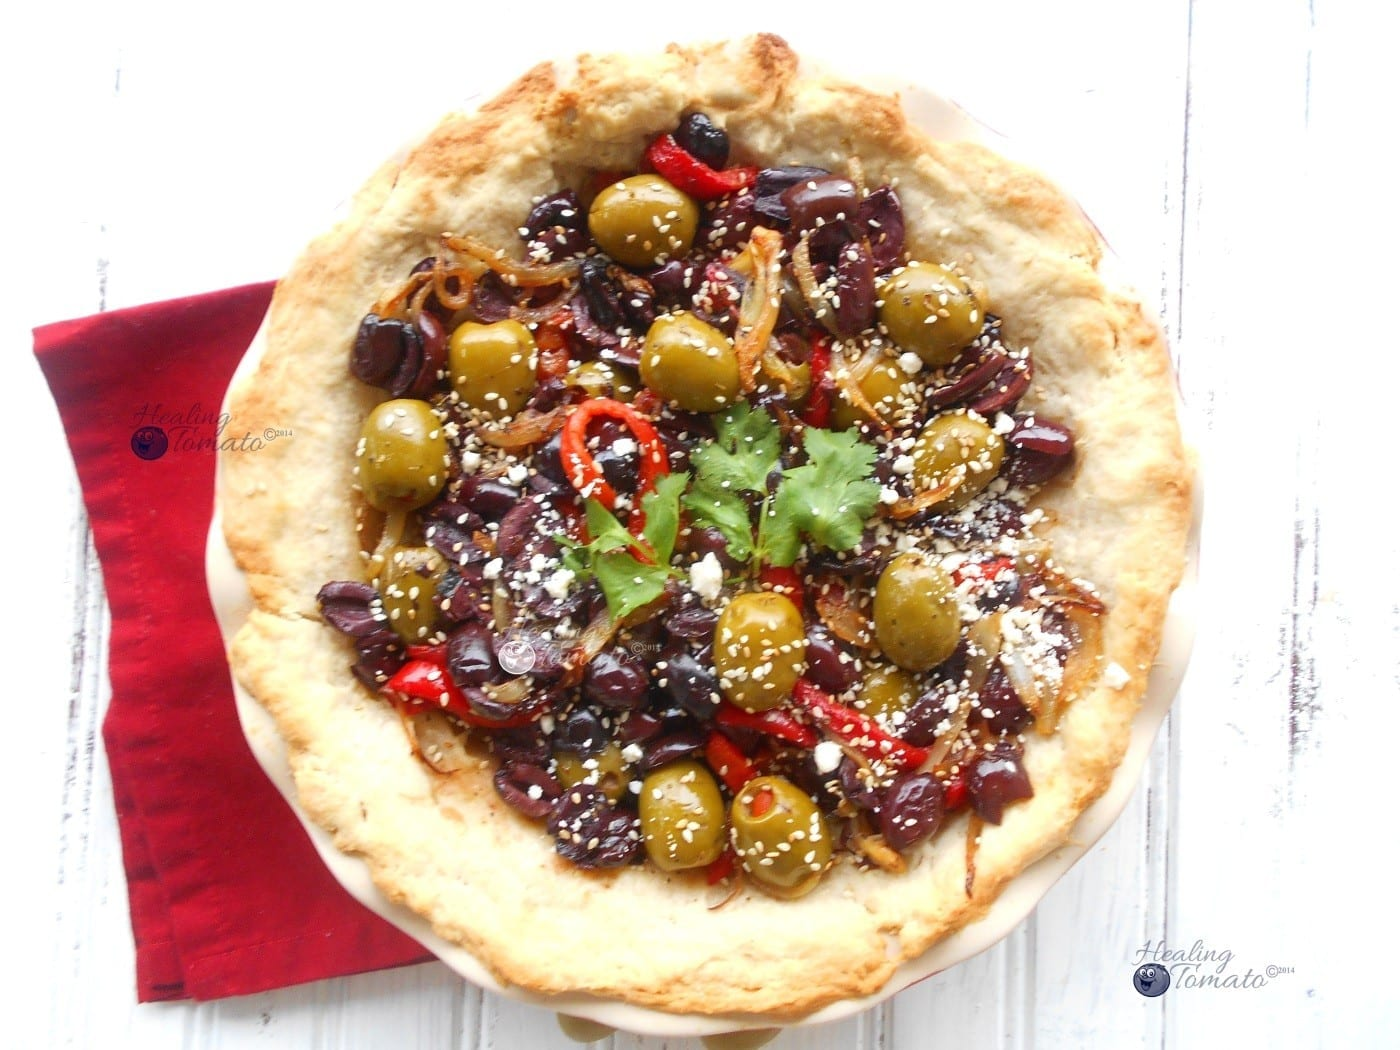 Overhead view of Mezzetta Recipe for Olive Pie on red napkin